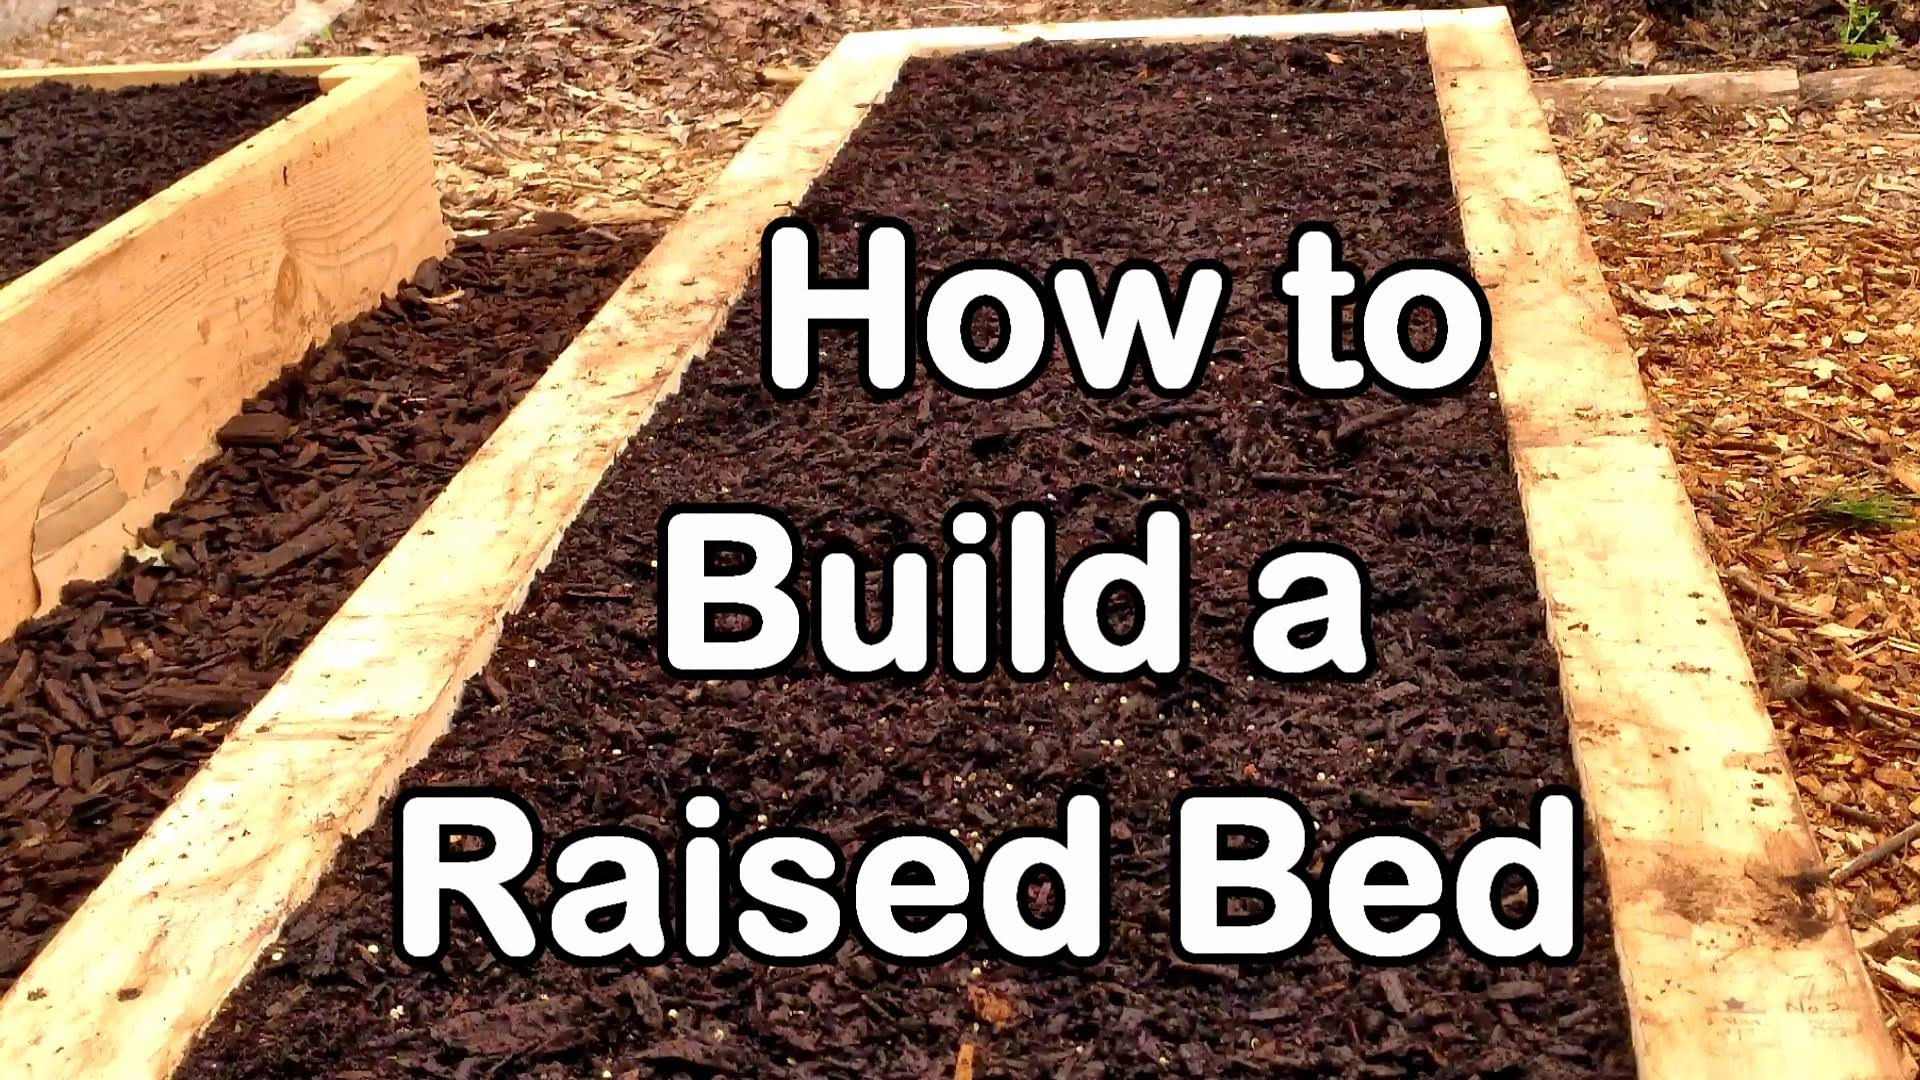 How to Build a Raised Garden Bed with Wood – Easy (EZ) & Cheap Youtube Raised Garden Bed Designs on small raised garden designs, best small vegetable garden designs, trellis designs, garden fence designs, raised bed shade gardens, raised planting beds, garden enclosure designs, garden box designs, berry garden designs, green wall designs, raised beds for gardens, water garden designs, rock garden designs, simple landscape designs, wheelchair garden bed designs, small perennial garden designs, raised gardens for handicapped, shade garden designs, knot garden designs, xeriscaping designs,